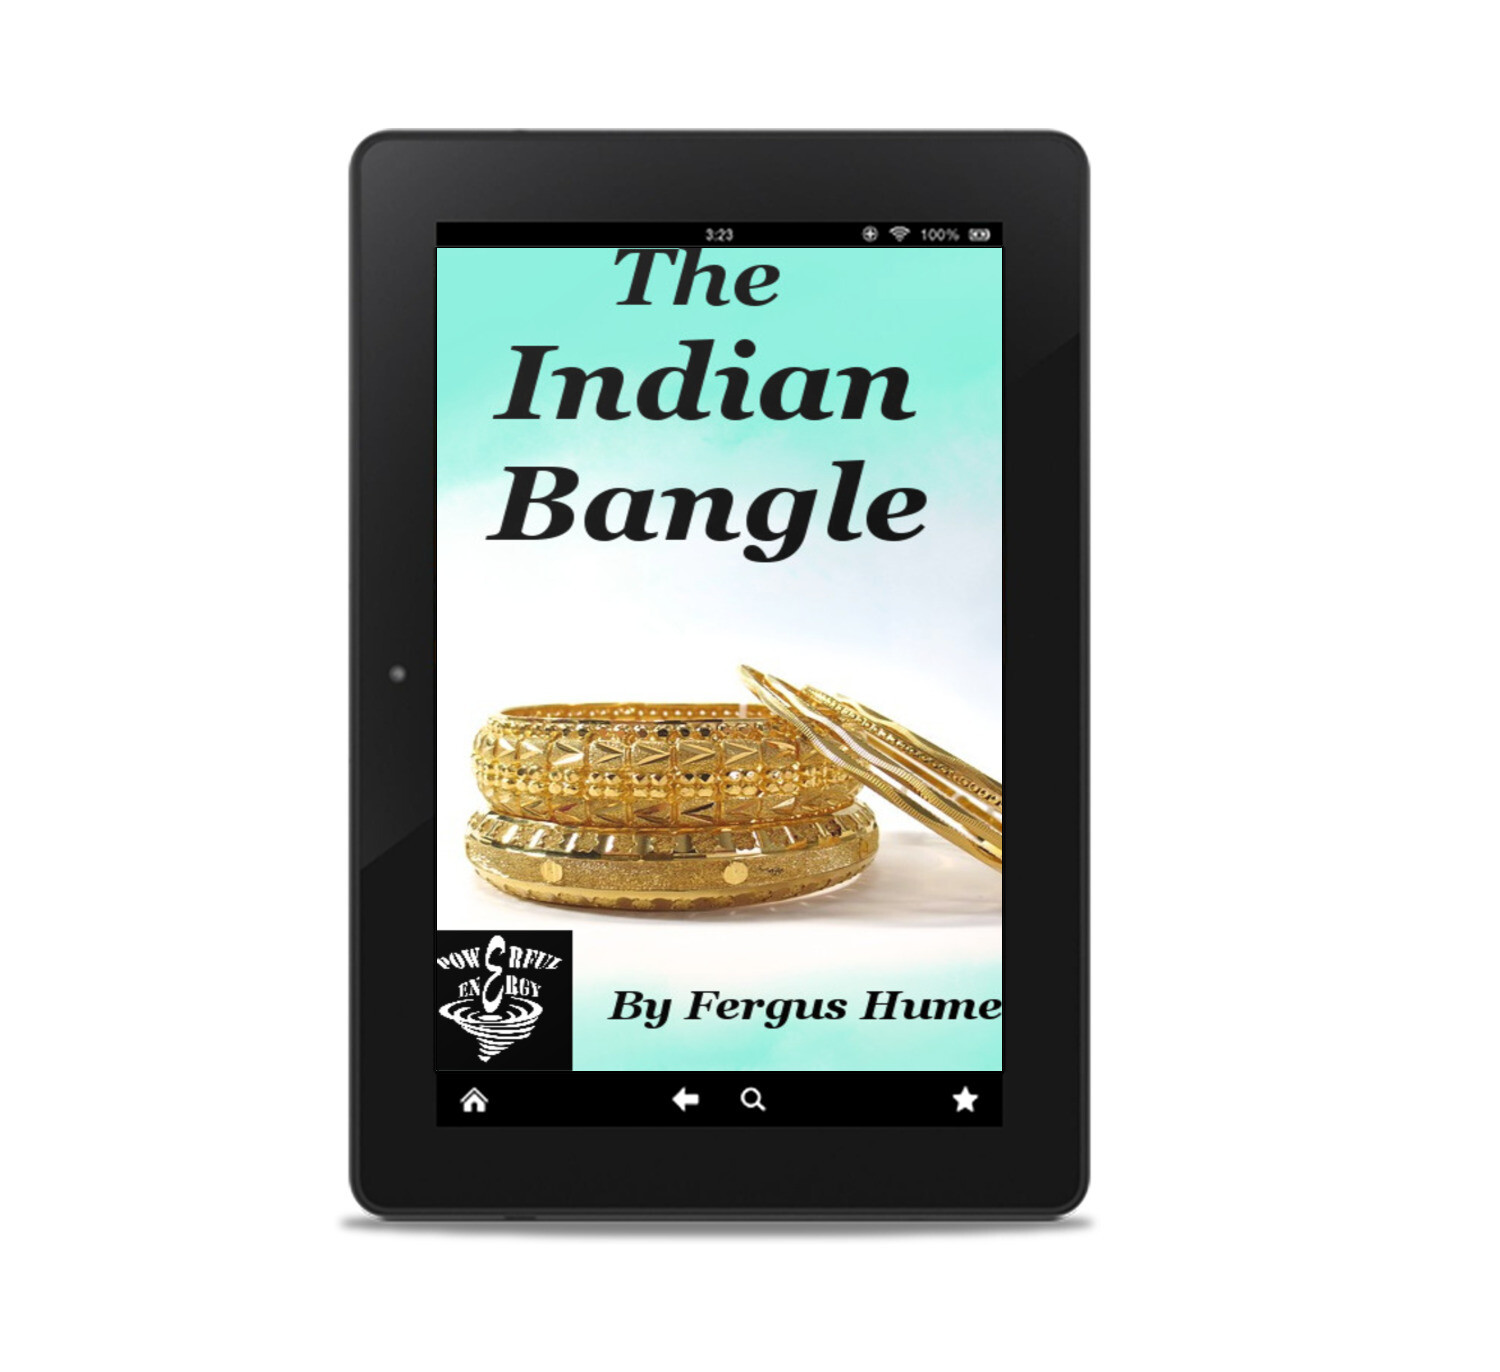 The Indian Bangle, by Fergus Hume